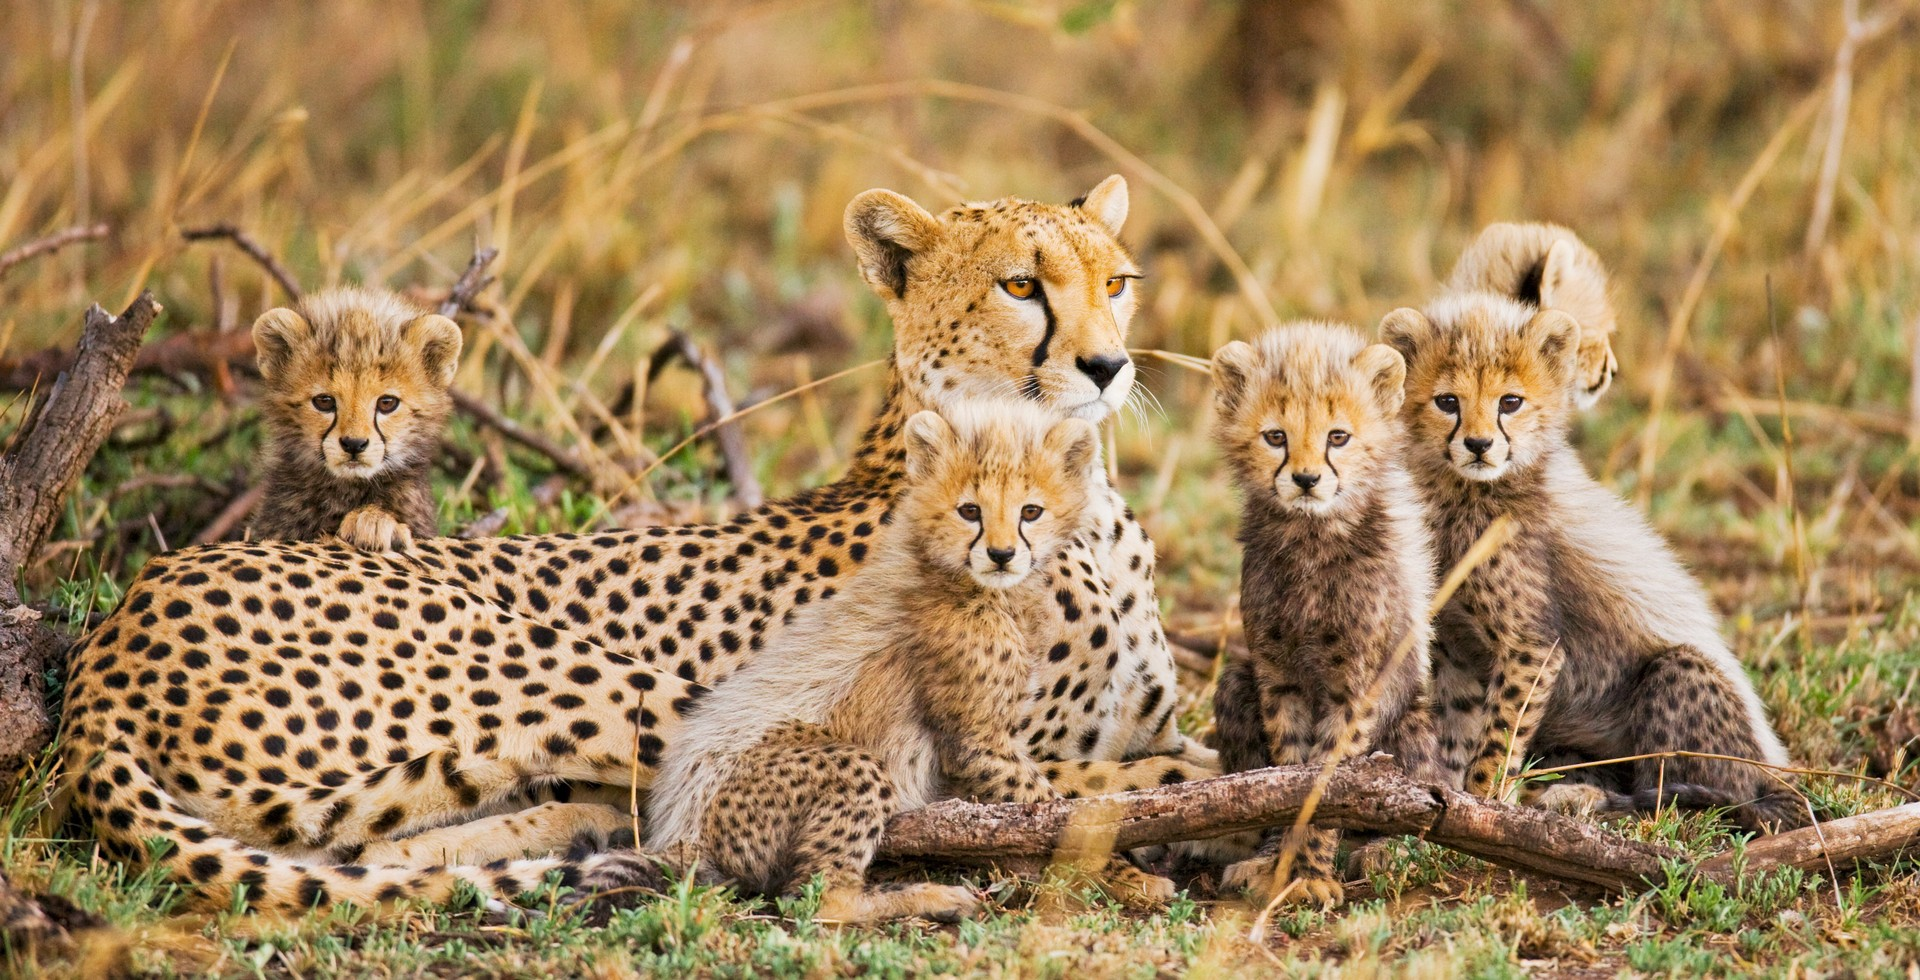 Cheetah family in Tanzania